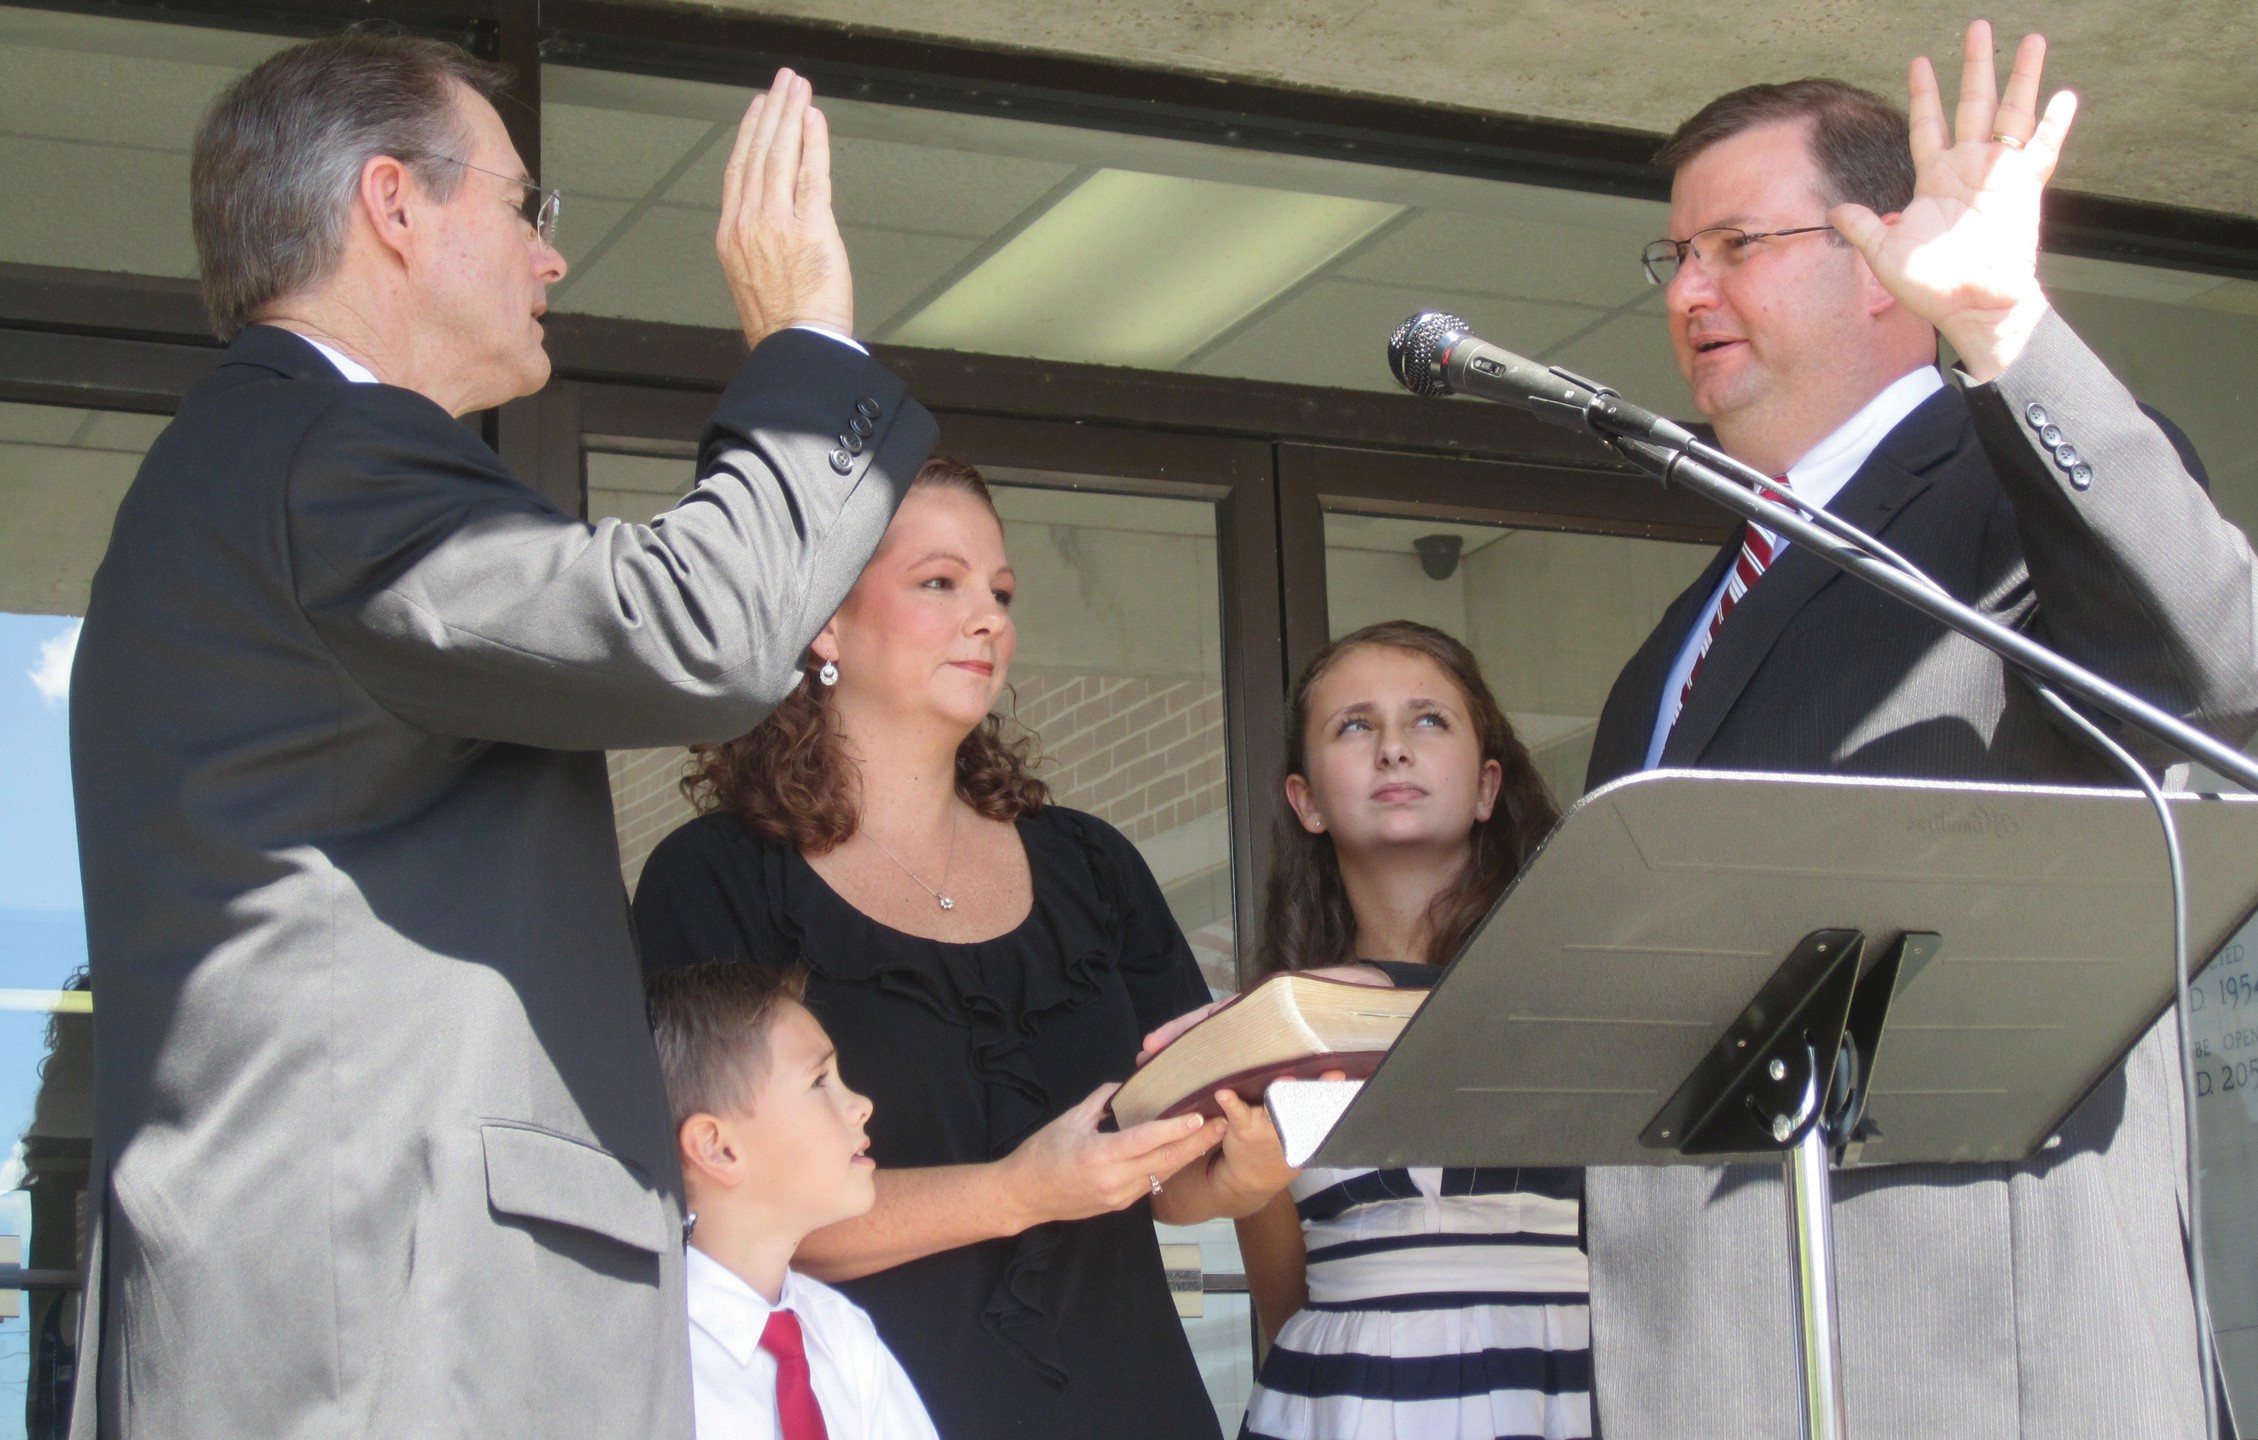 """Gregg Armstrong, known as county school board president and board member from Locust Fork/Cleveland (District 4), and as minister of music at Locust Fork Baptist Church, was sworn in as Blount County Revenue Commissioner Monday by Probate Judge Chris Green, sworn in himself less than a week before. Green had vacated that office after being appointed to assume the probate judgeship several months early by Gov. Robert Bentley. Shown are (from left) Green, Armstrong's son Charlie, 6, his wife Angie, daughter Hannah, 13, and Armstrong. Noting that it has been his privilege to serve two important groups of people in the county – those involved in school matters, and those at his church, he added, """"Beginning today, I get to serve all the people of Blount County,"""" vowing to serve """"with all my heart."""" Armstrong has been a member of the county school board for 20 years, serving as it's president since Jan. 11, 2011. He resigned from the school board in an emotional meeting just before the swearing-in. He will continue his avocation as minister of music at the church. He also owns a business, CATS Carbon, in Hayden. – Ron Gholson"""